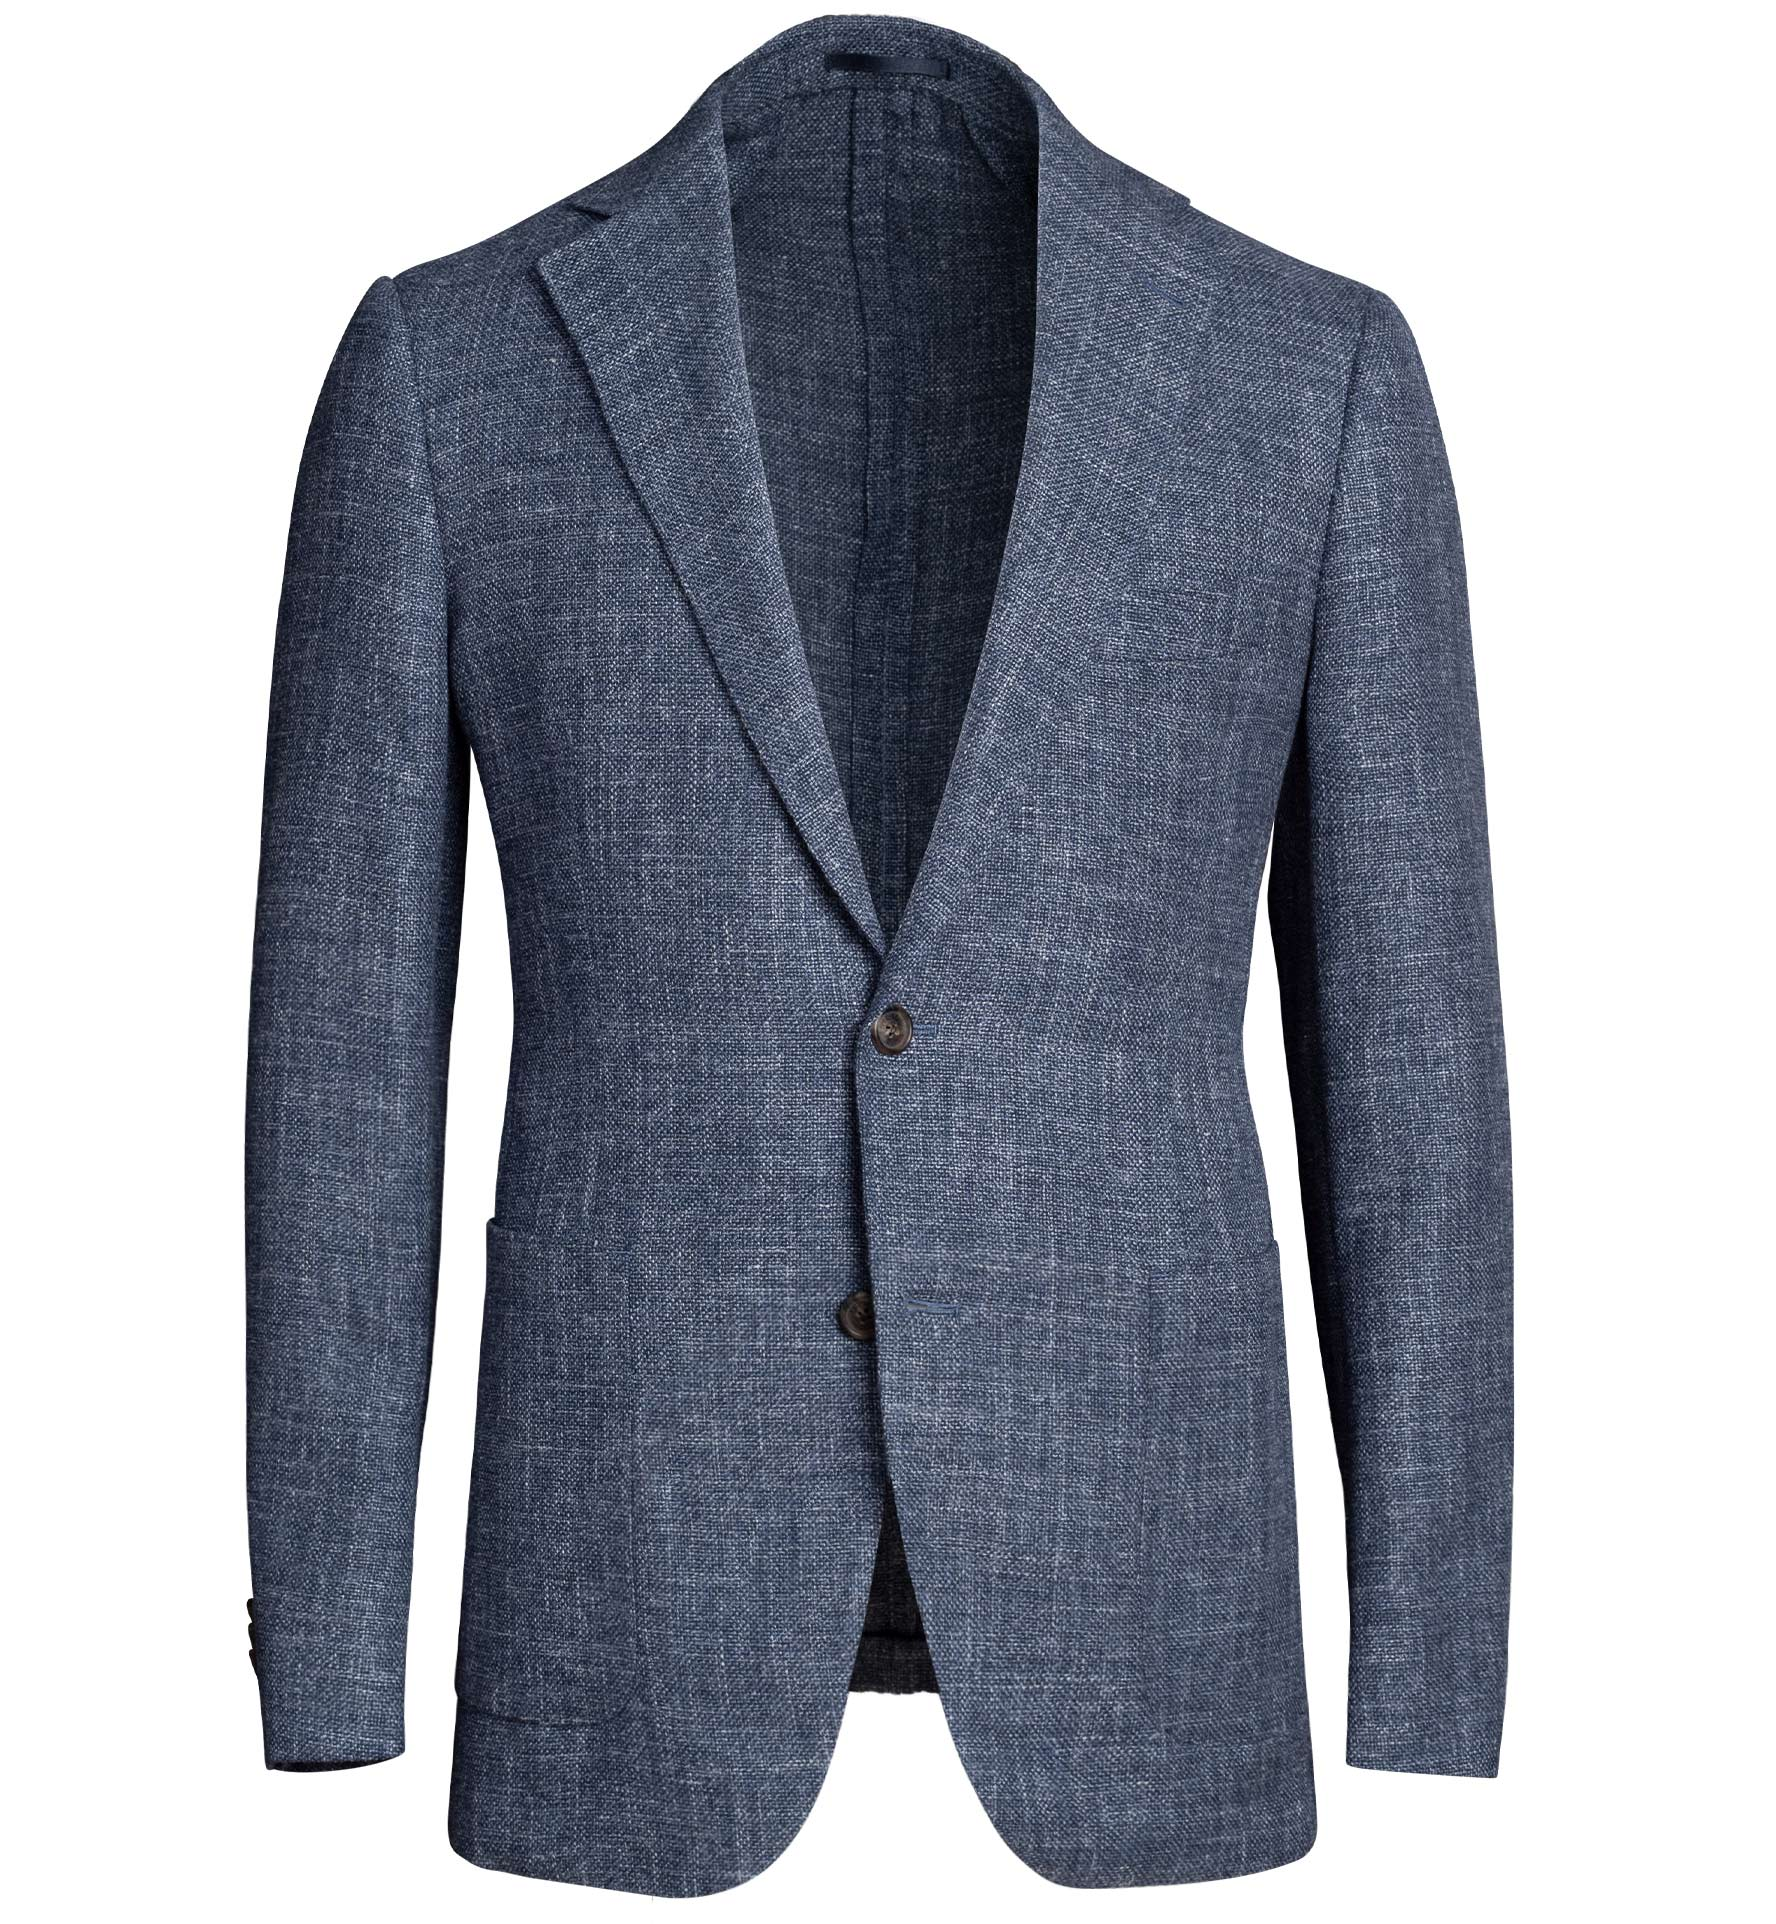 Zoom Image of Bedford Faded Blue Melange Wool Blend Jacket